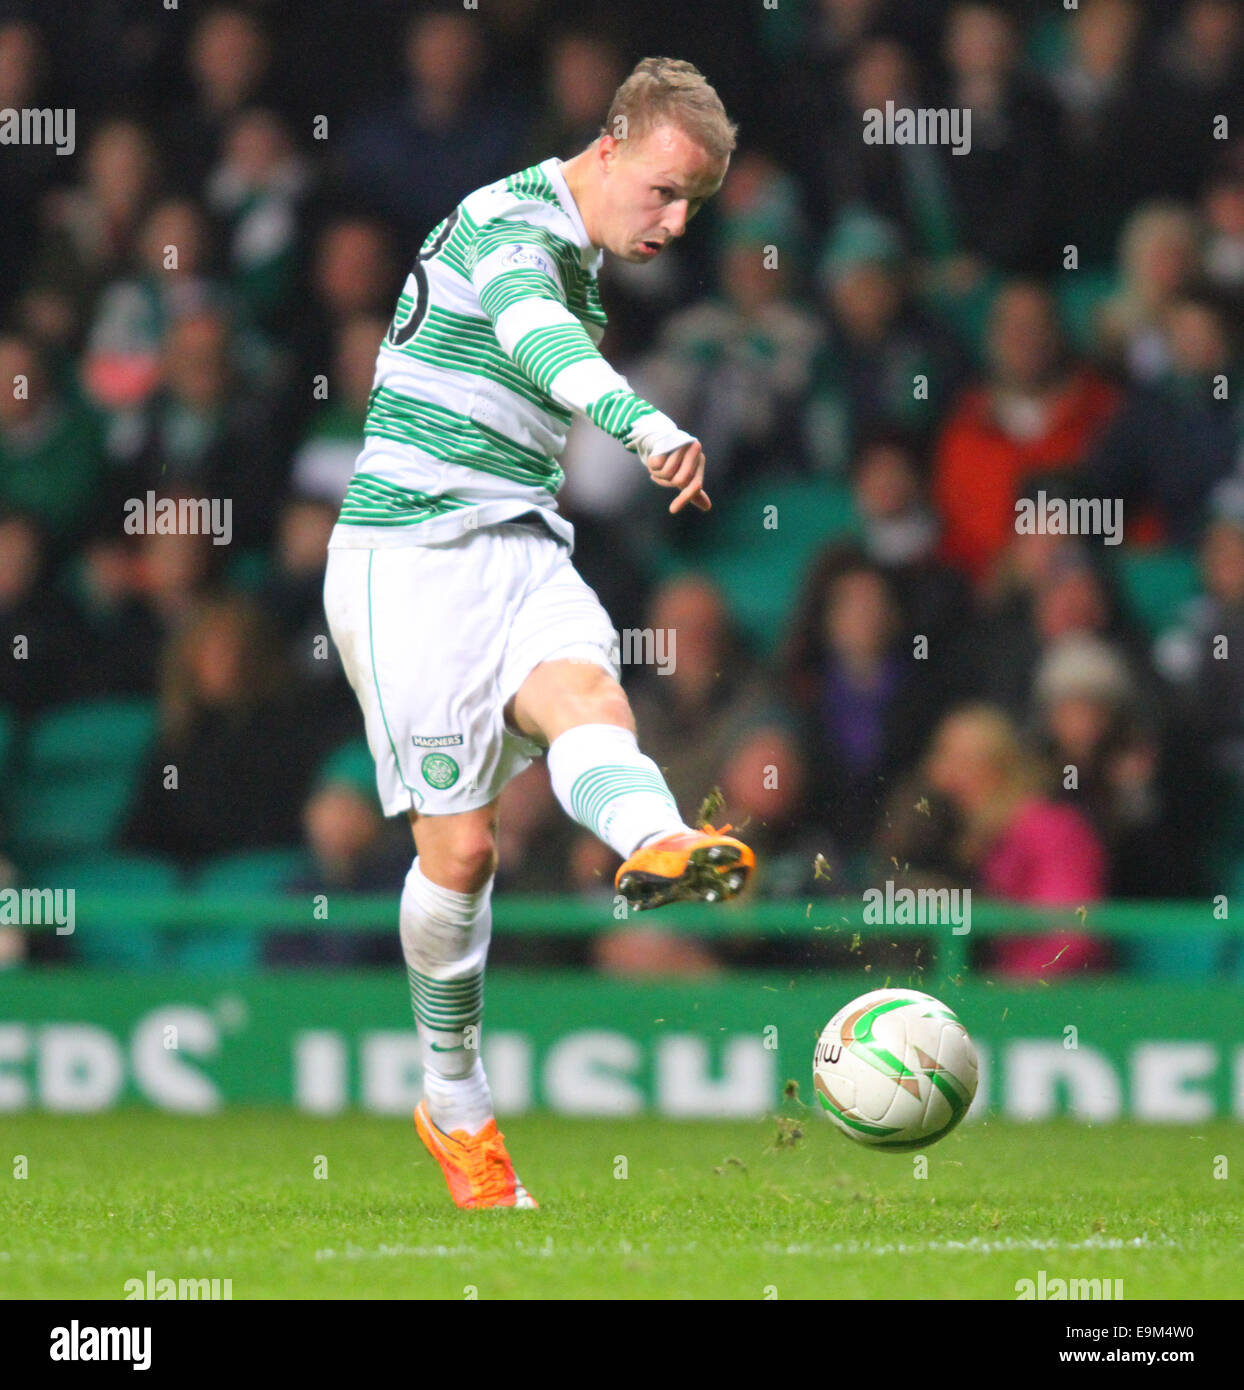 Glasgow, Scotland. 29th Oct, 2014. Scottish League Cup. Celtic versus Partick Thistle. Leigh Griffiths shoots on - Stock Image